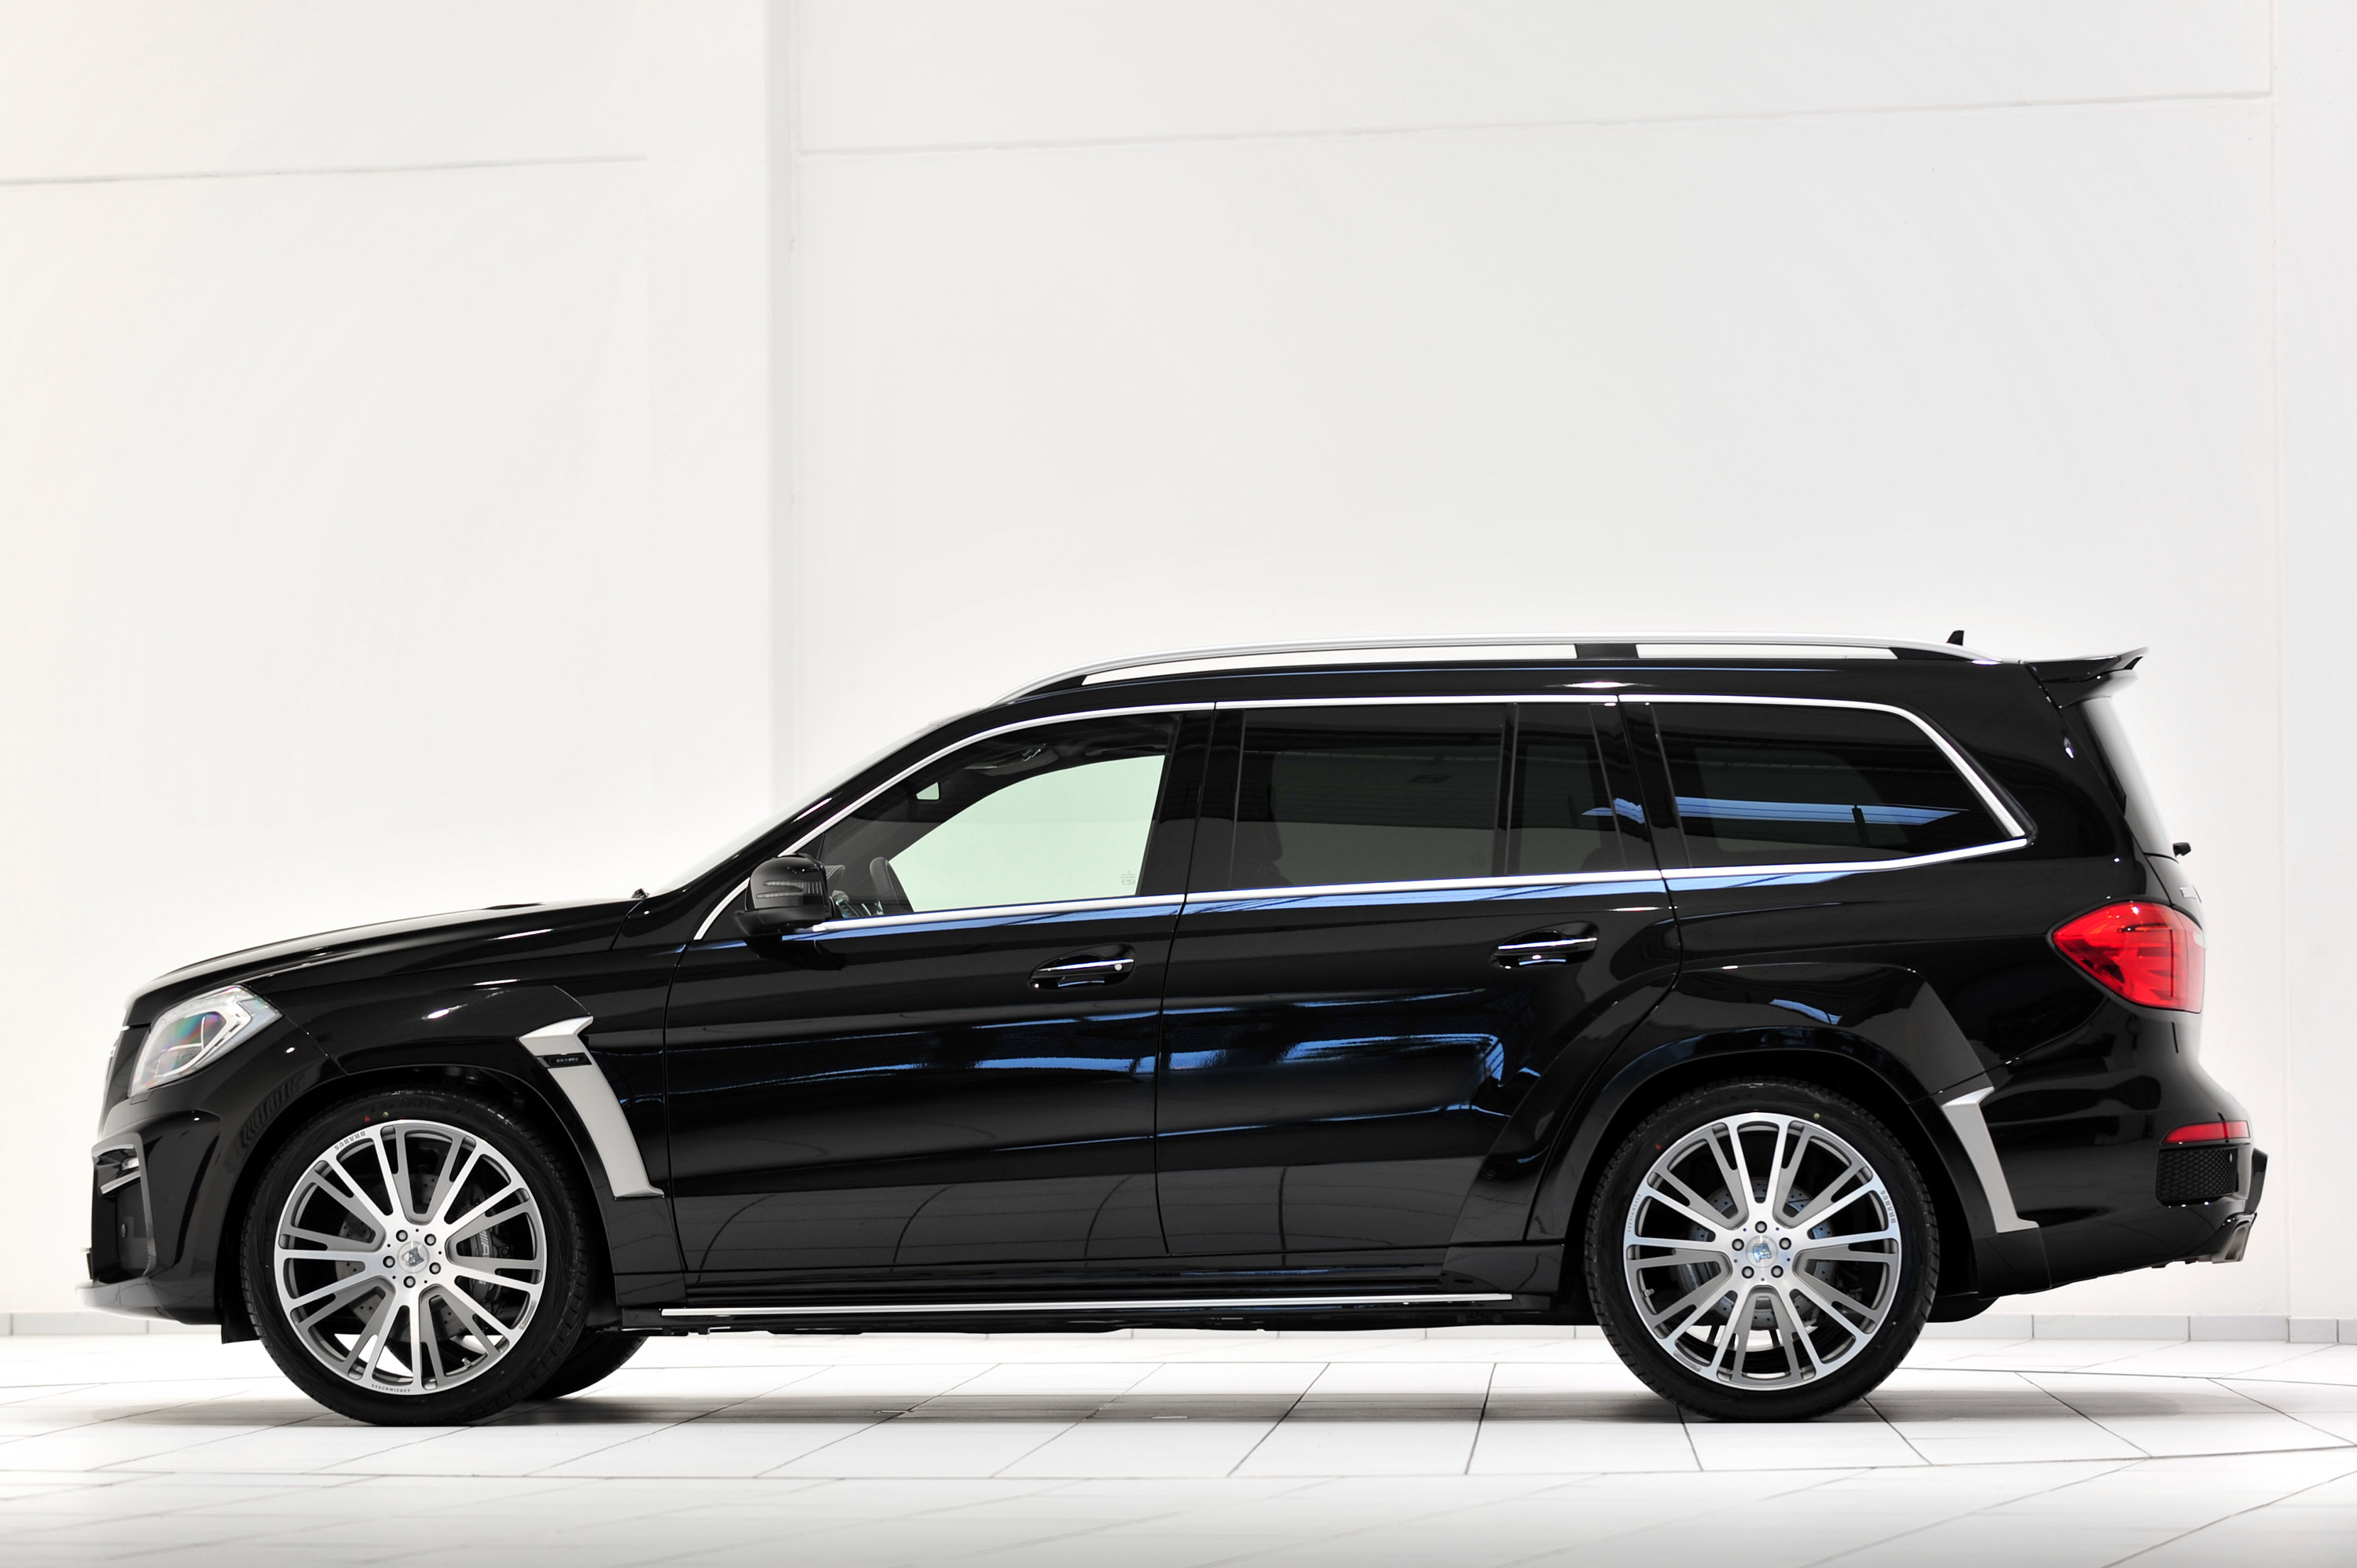 2014 Mercedes-Benz GL 63 AMG Review - GTspirit